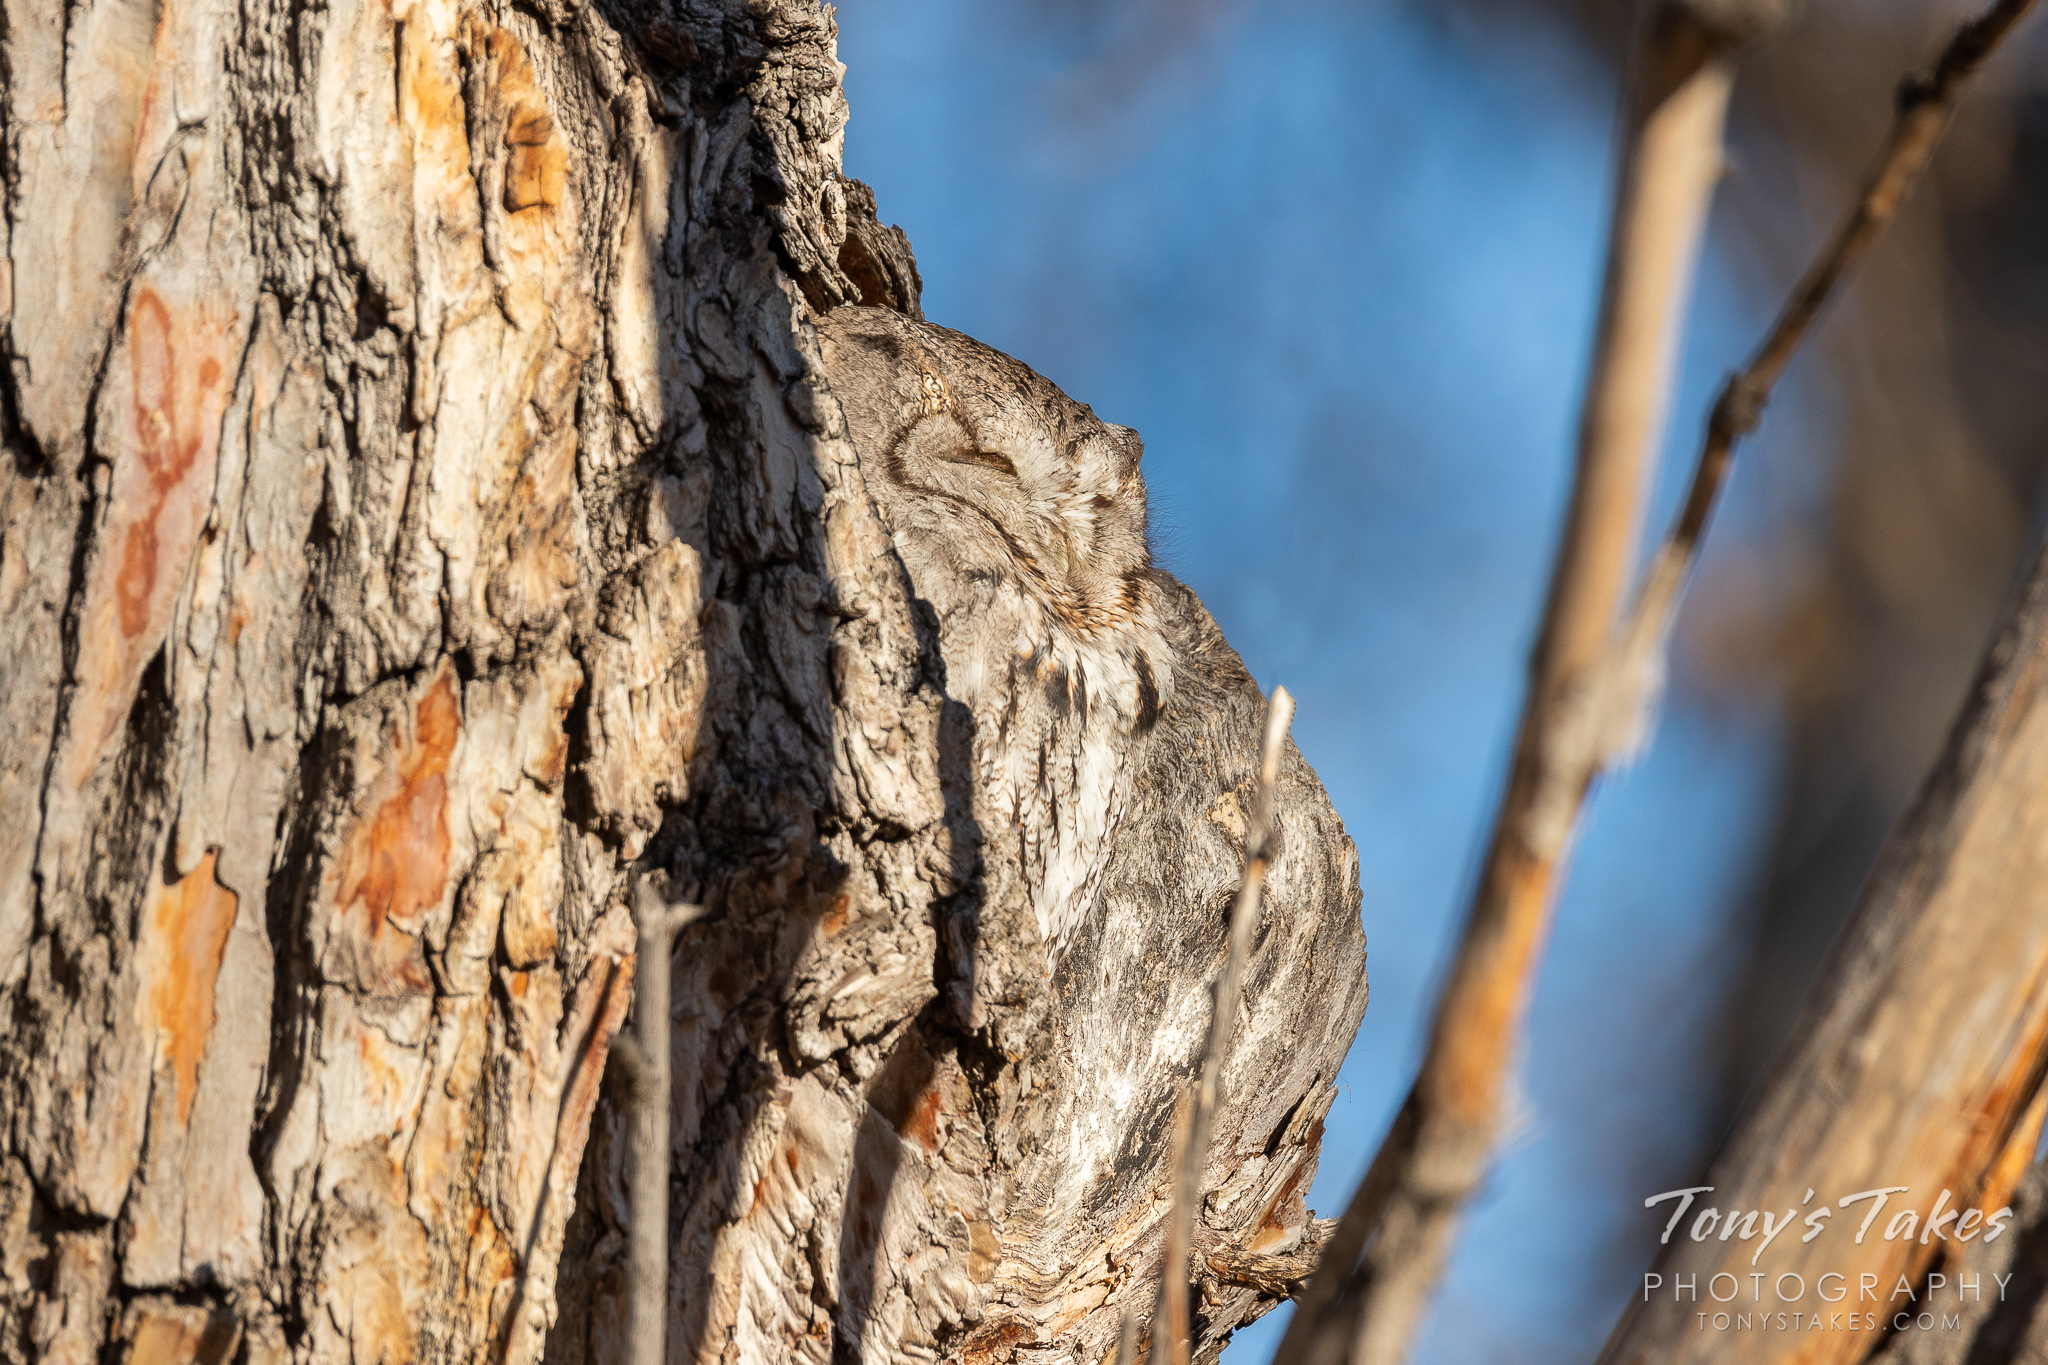 Little Screech Owl showcases its camouflage